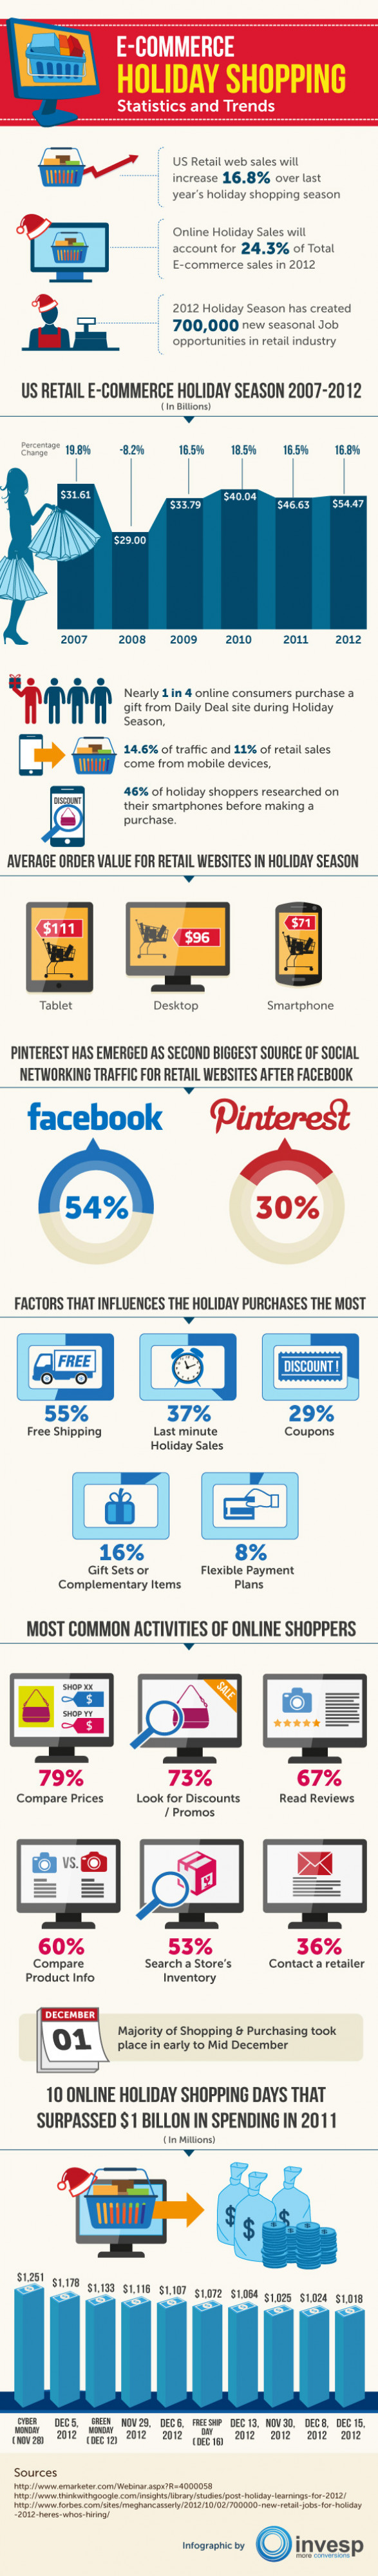 ecommerce holiday shopping statistics and trends 508d65de3e4c3 w587 E commerce Holiday Shopping Statistics and Trends